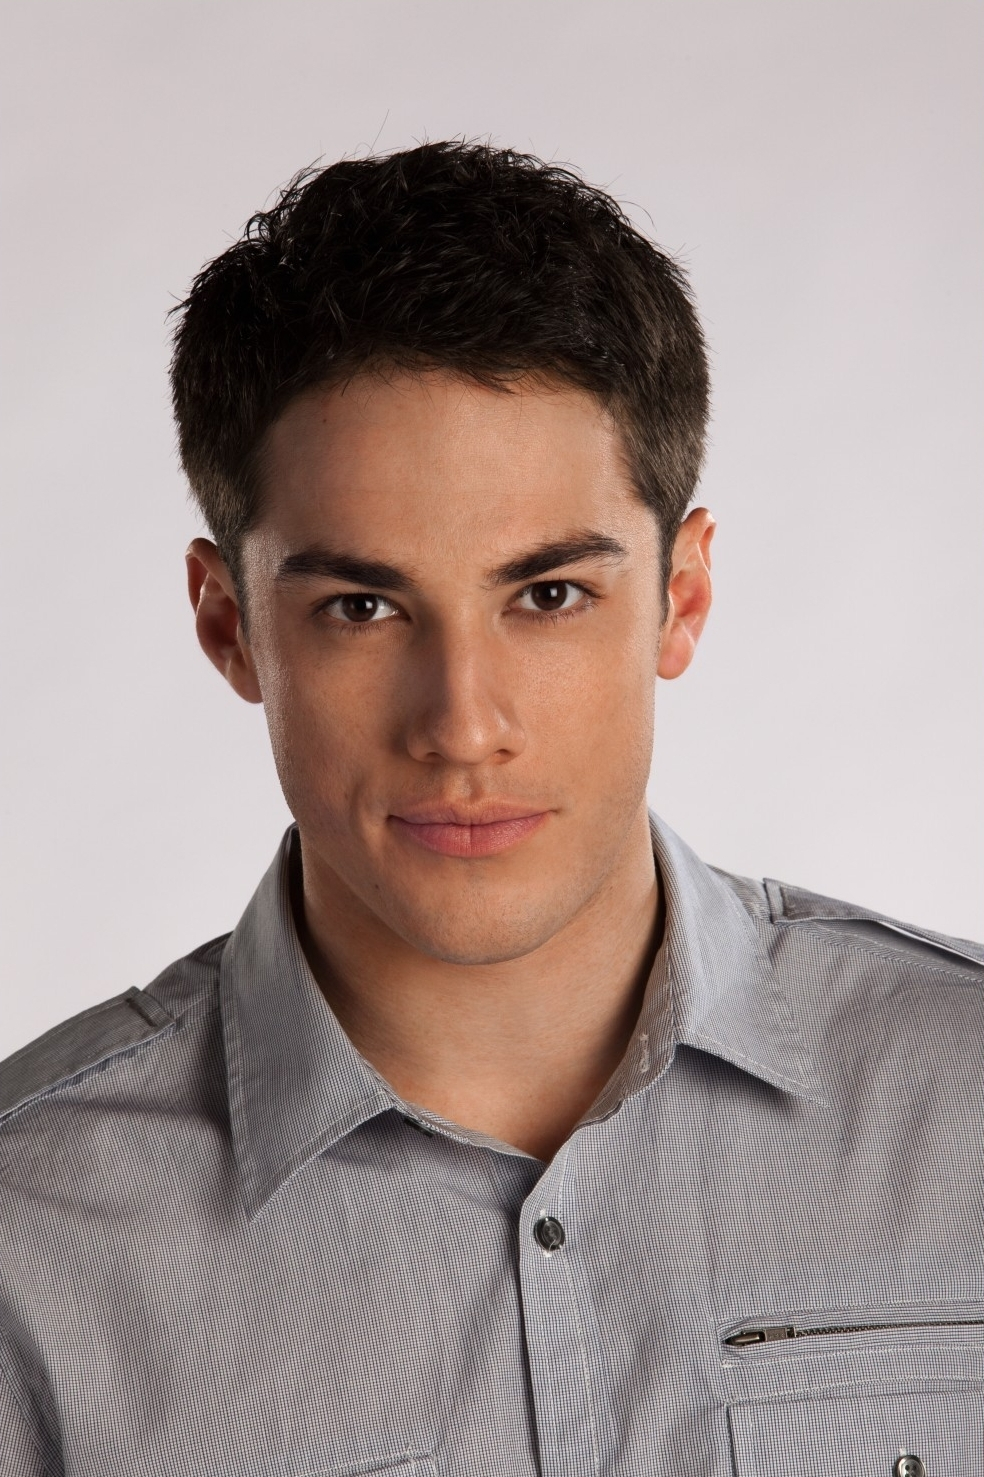 http://images2.fanpop.com/image/photos/9300000/Michael-Trevino-as-Tyler-Lockwood-michael-trevino-9366534-984-1477.jpg